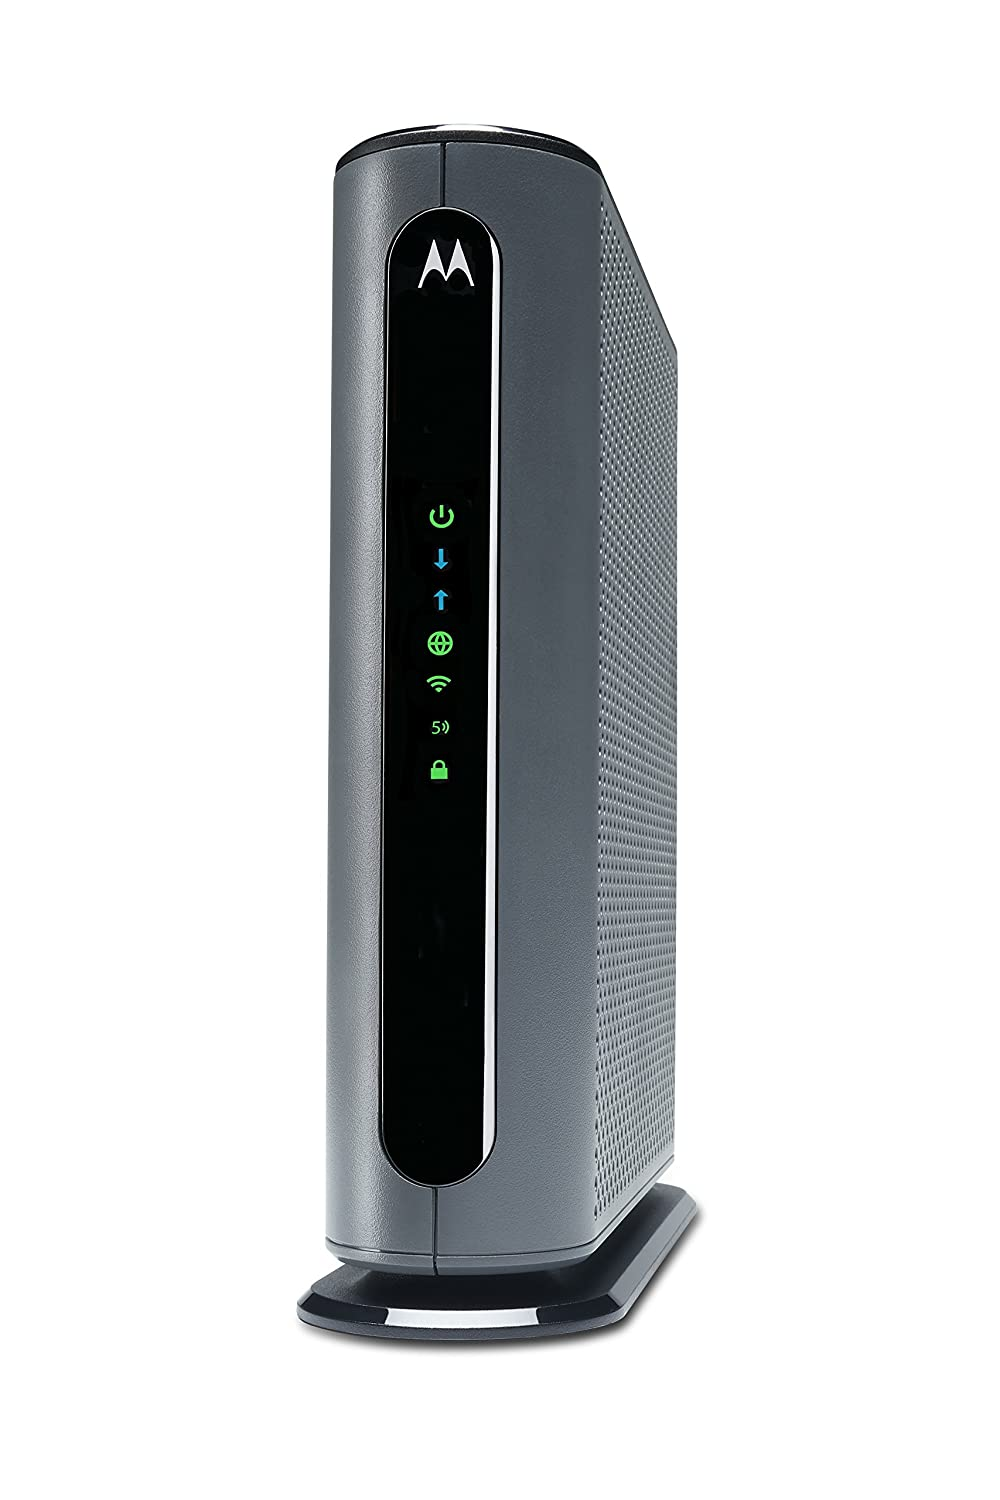 Motorola Mg7700 24 X8 Cable Modem Plus Ac1900 Dual Band Wi Fi Gigabit Router With Power Boost, 1000 Mbps Maximum Docsis 3.0   Approved By Comcast Xfinity by Motorola